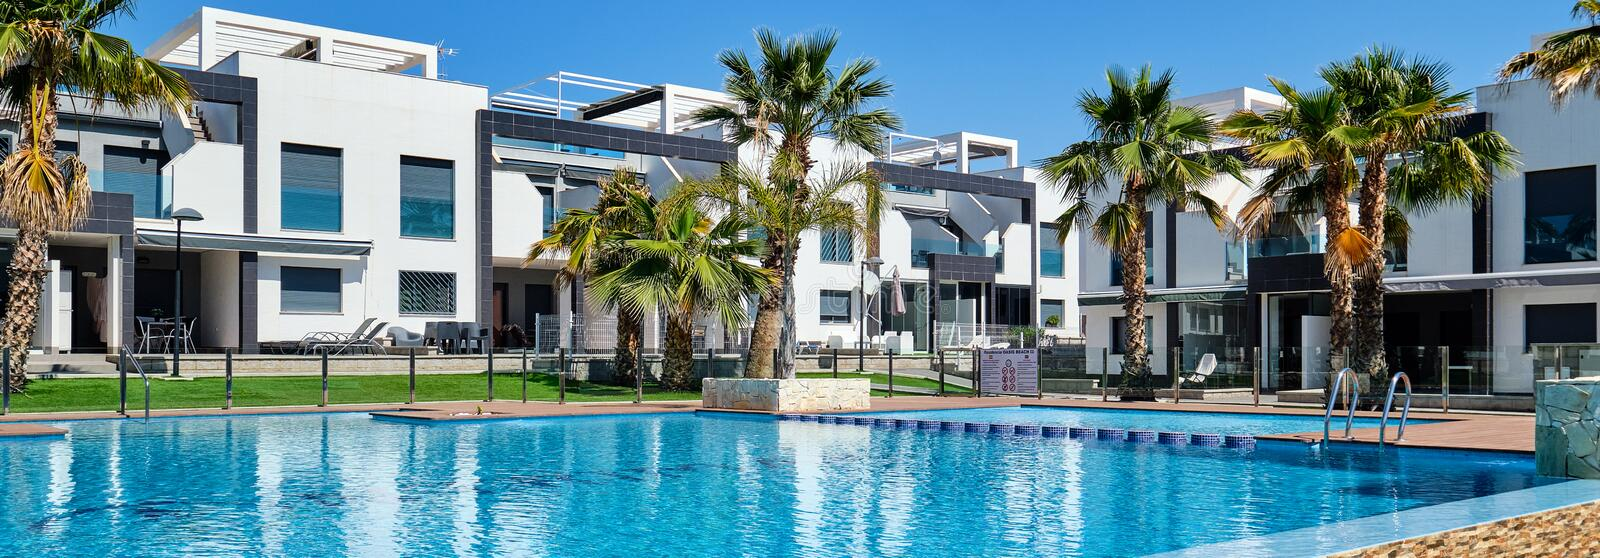 Panoramic image beautiful town houses with swimming pool, Torrevieja, Spain. Panoramic image beautiful contemporary modern town houses with swimming pool stock image